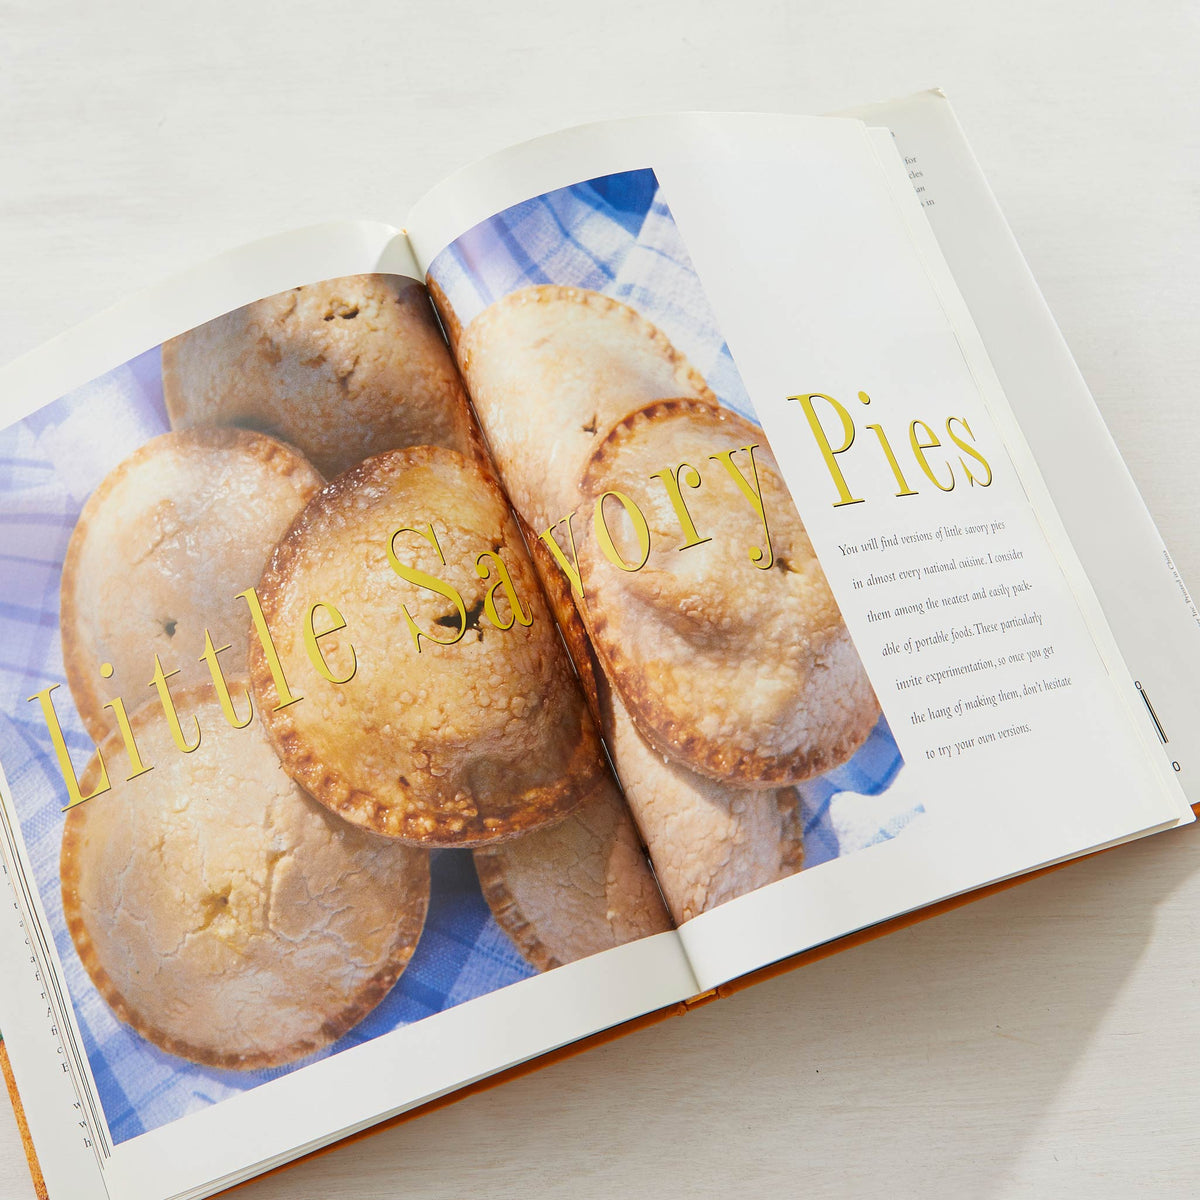 Lee Bailey's Portable Food. Great tasting recipes for entertaining away from home. From sandwich spreads to savory pies, the best portable food ideas.